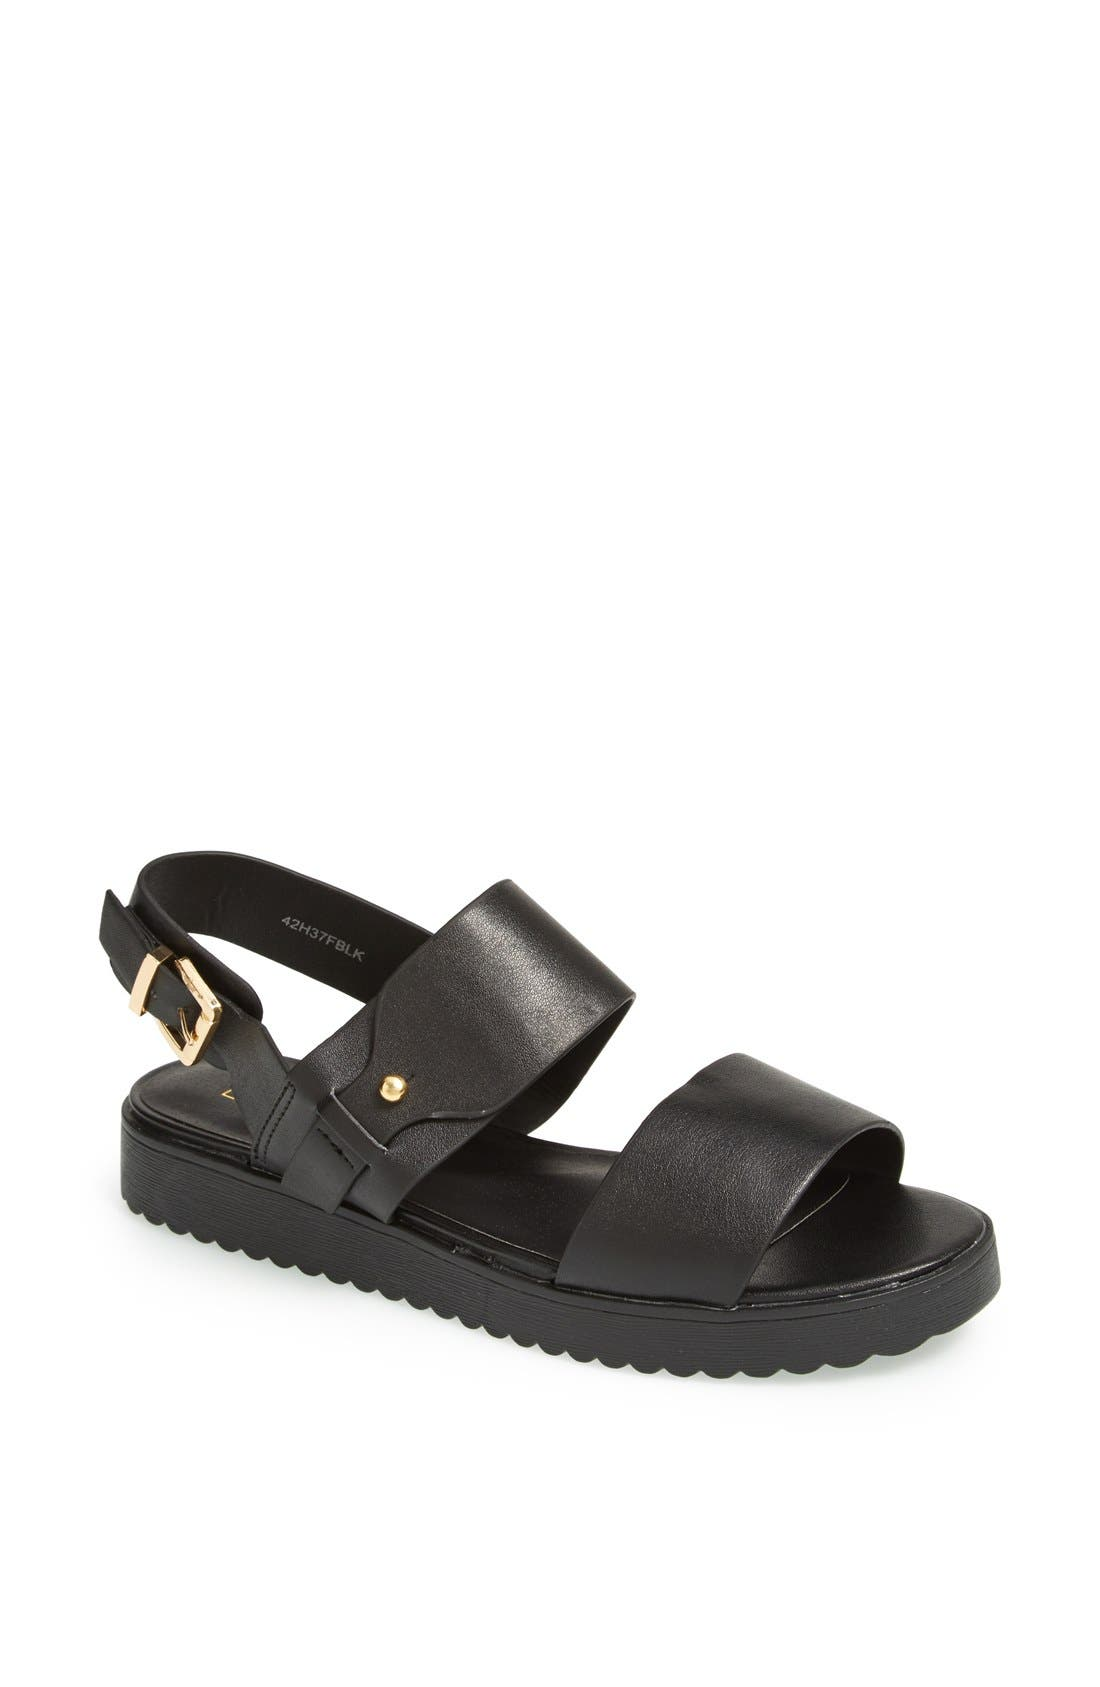 Main Image - Topshop 'Hydrate' Faux Leather Sandals